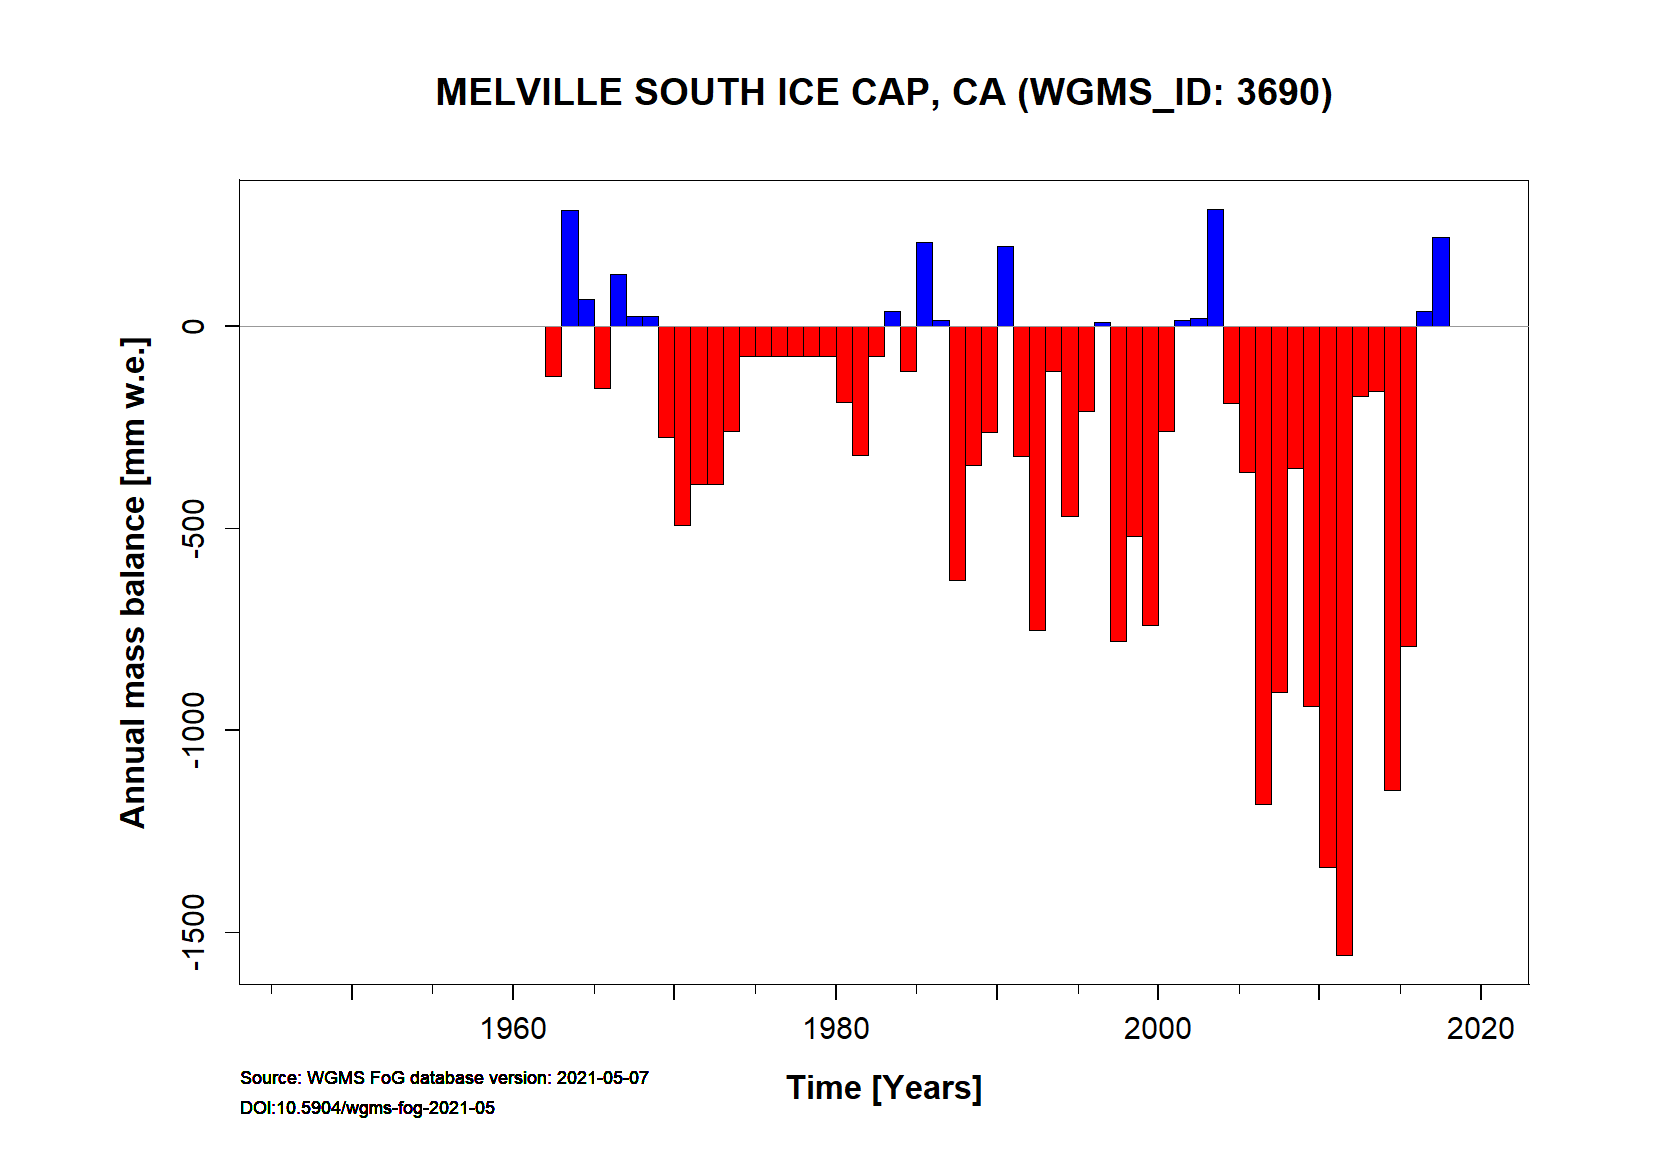 Melville South Ice Cap Annual Mass Balance (WGMS, 2016)